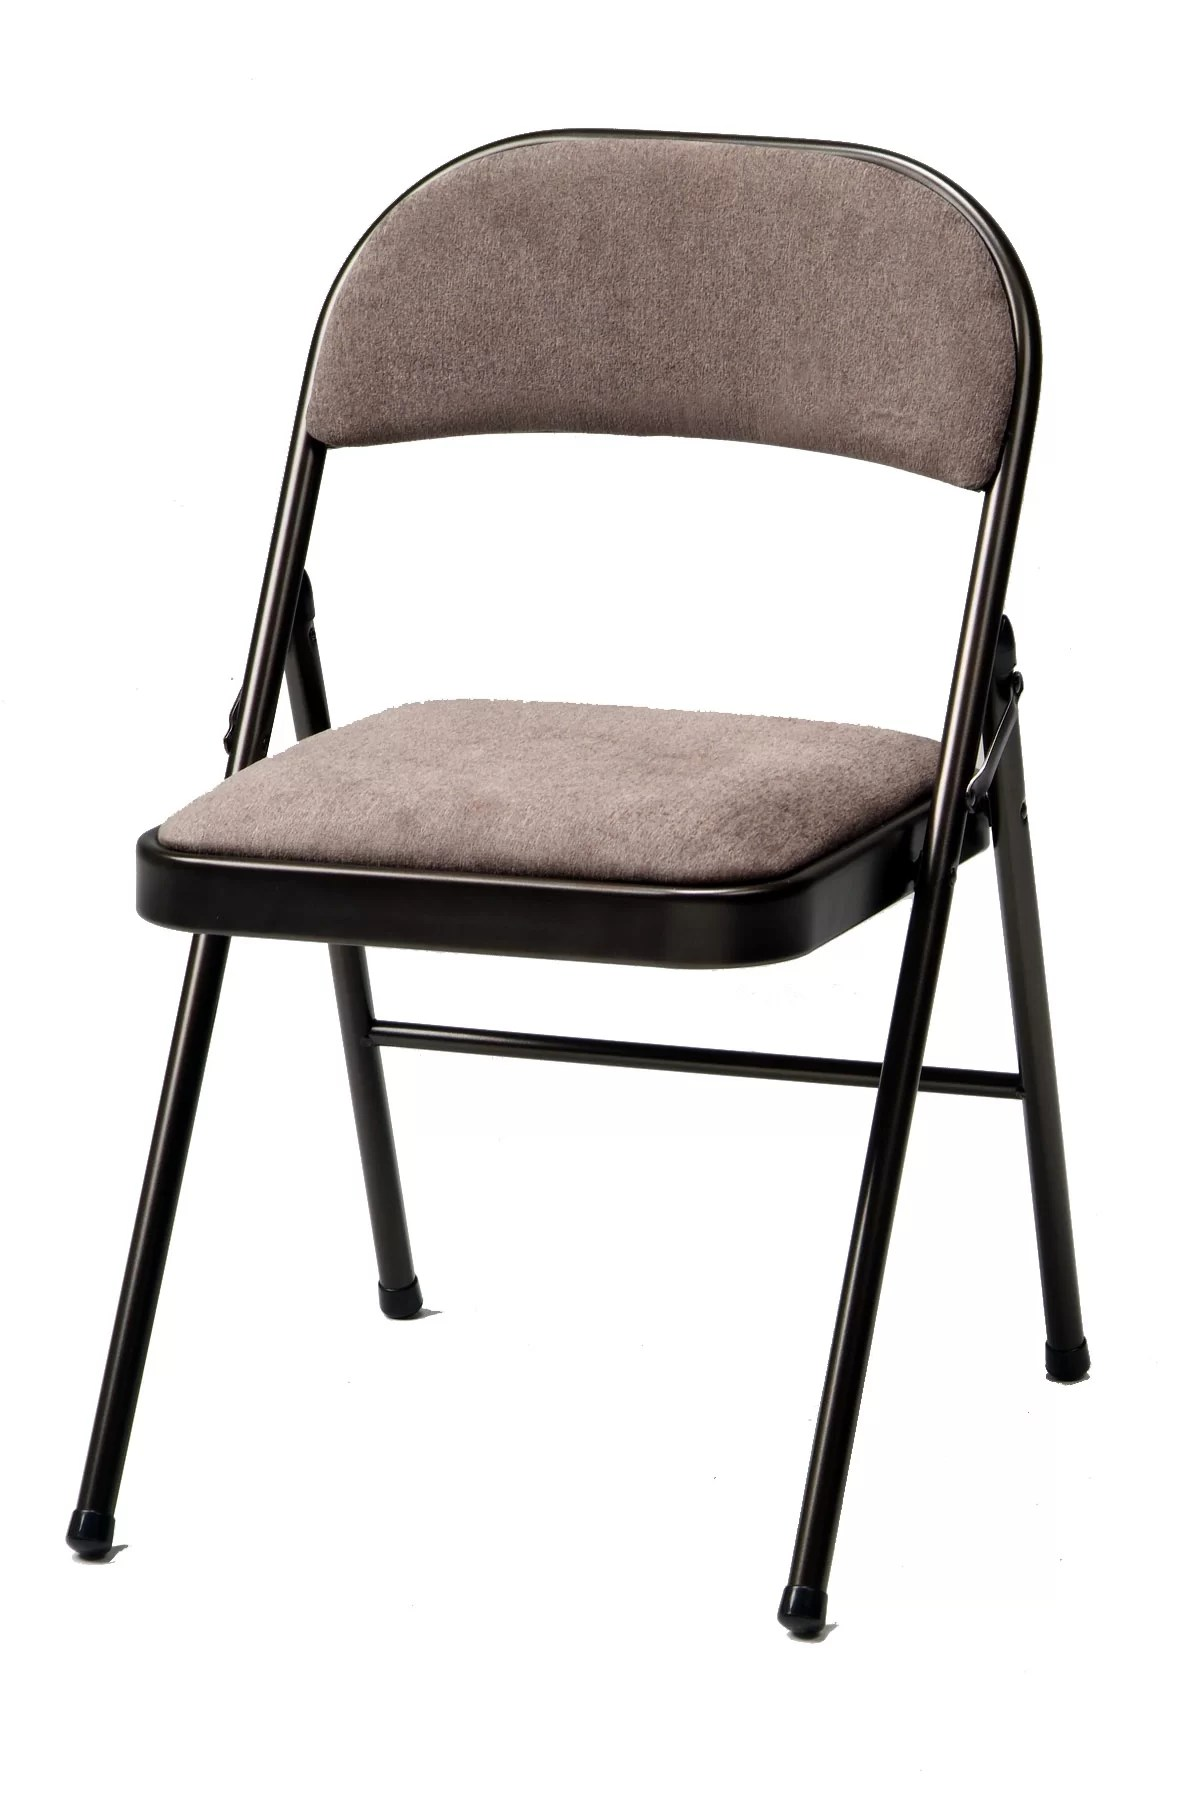 Deluxe Fabric Padded Folding Chair